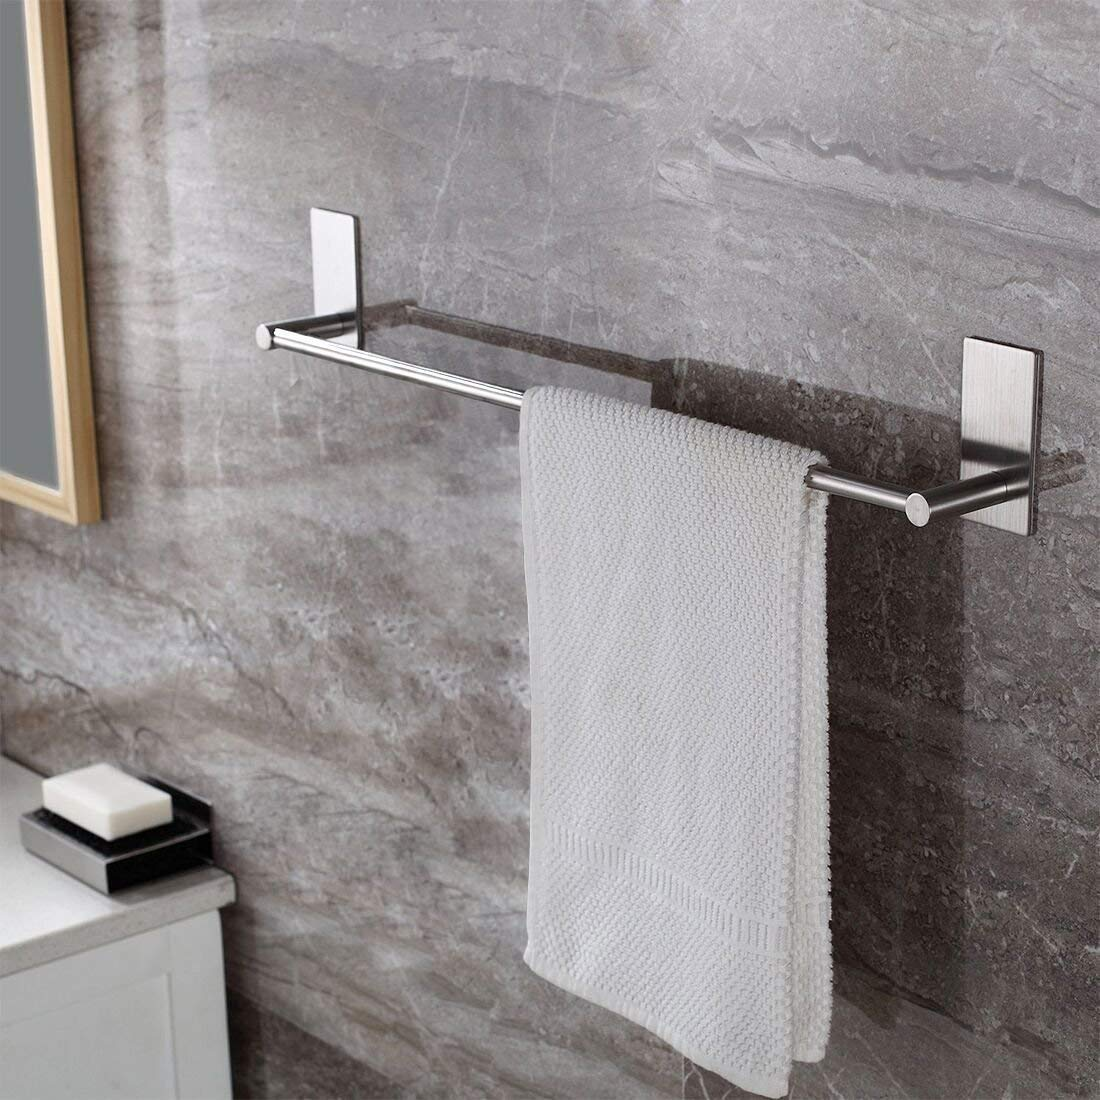 Taozun Towel Bar Self Adhesive 21.65-Inch Bathroom Brushed SUS 304 Stainless Steel Bath Wall Shelf Rack Hanging Towel Stick On Sticky Hanger Contemporary Style